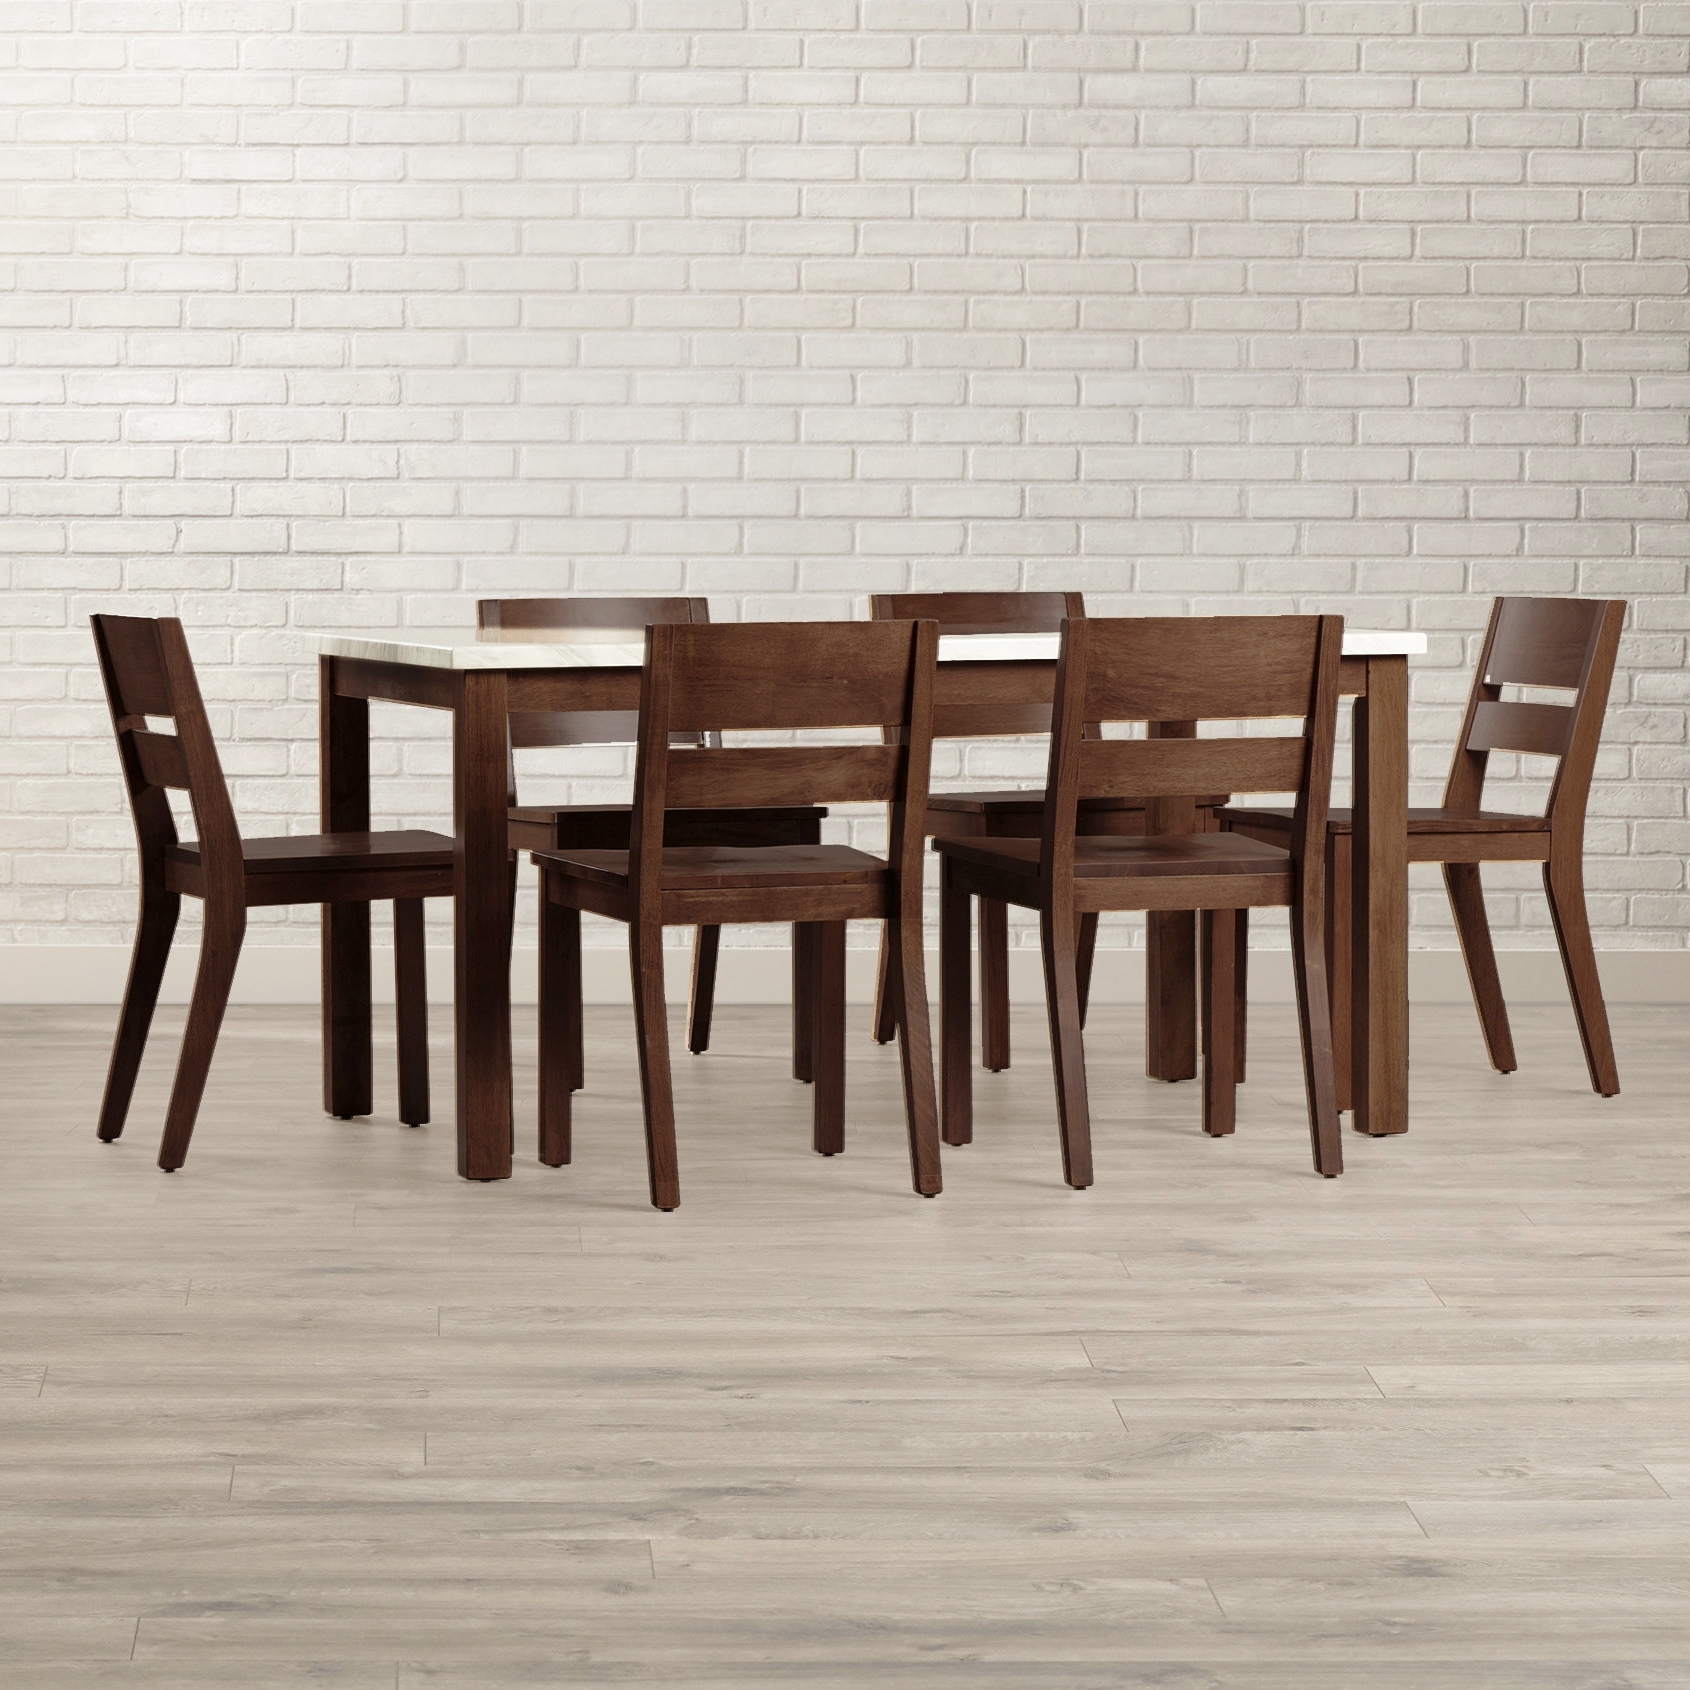 Wayfair Pertaining To Candice Ii 7 Piece Extension Rectangle Dining Sets (View 12 of 25)